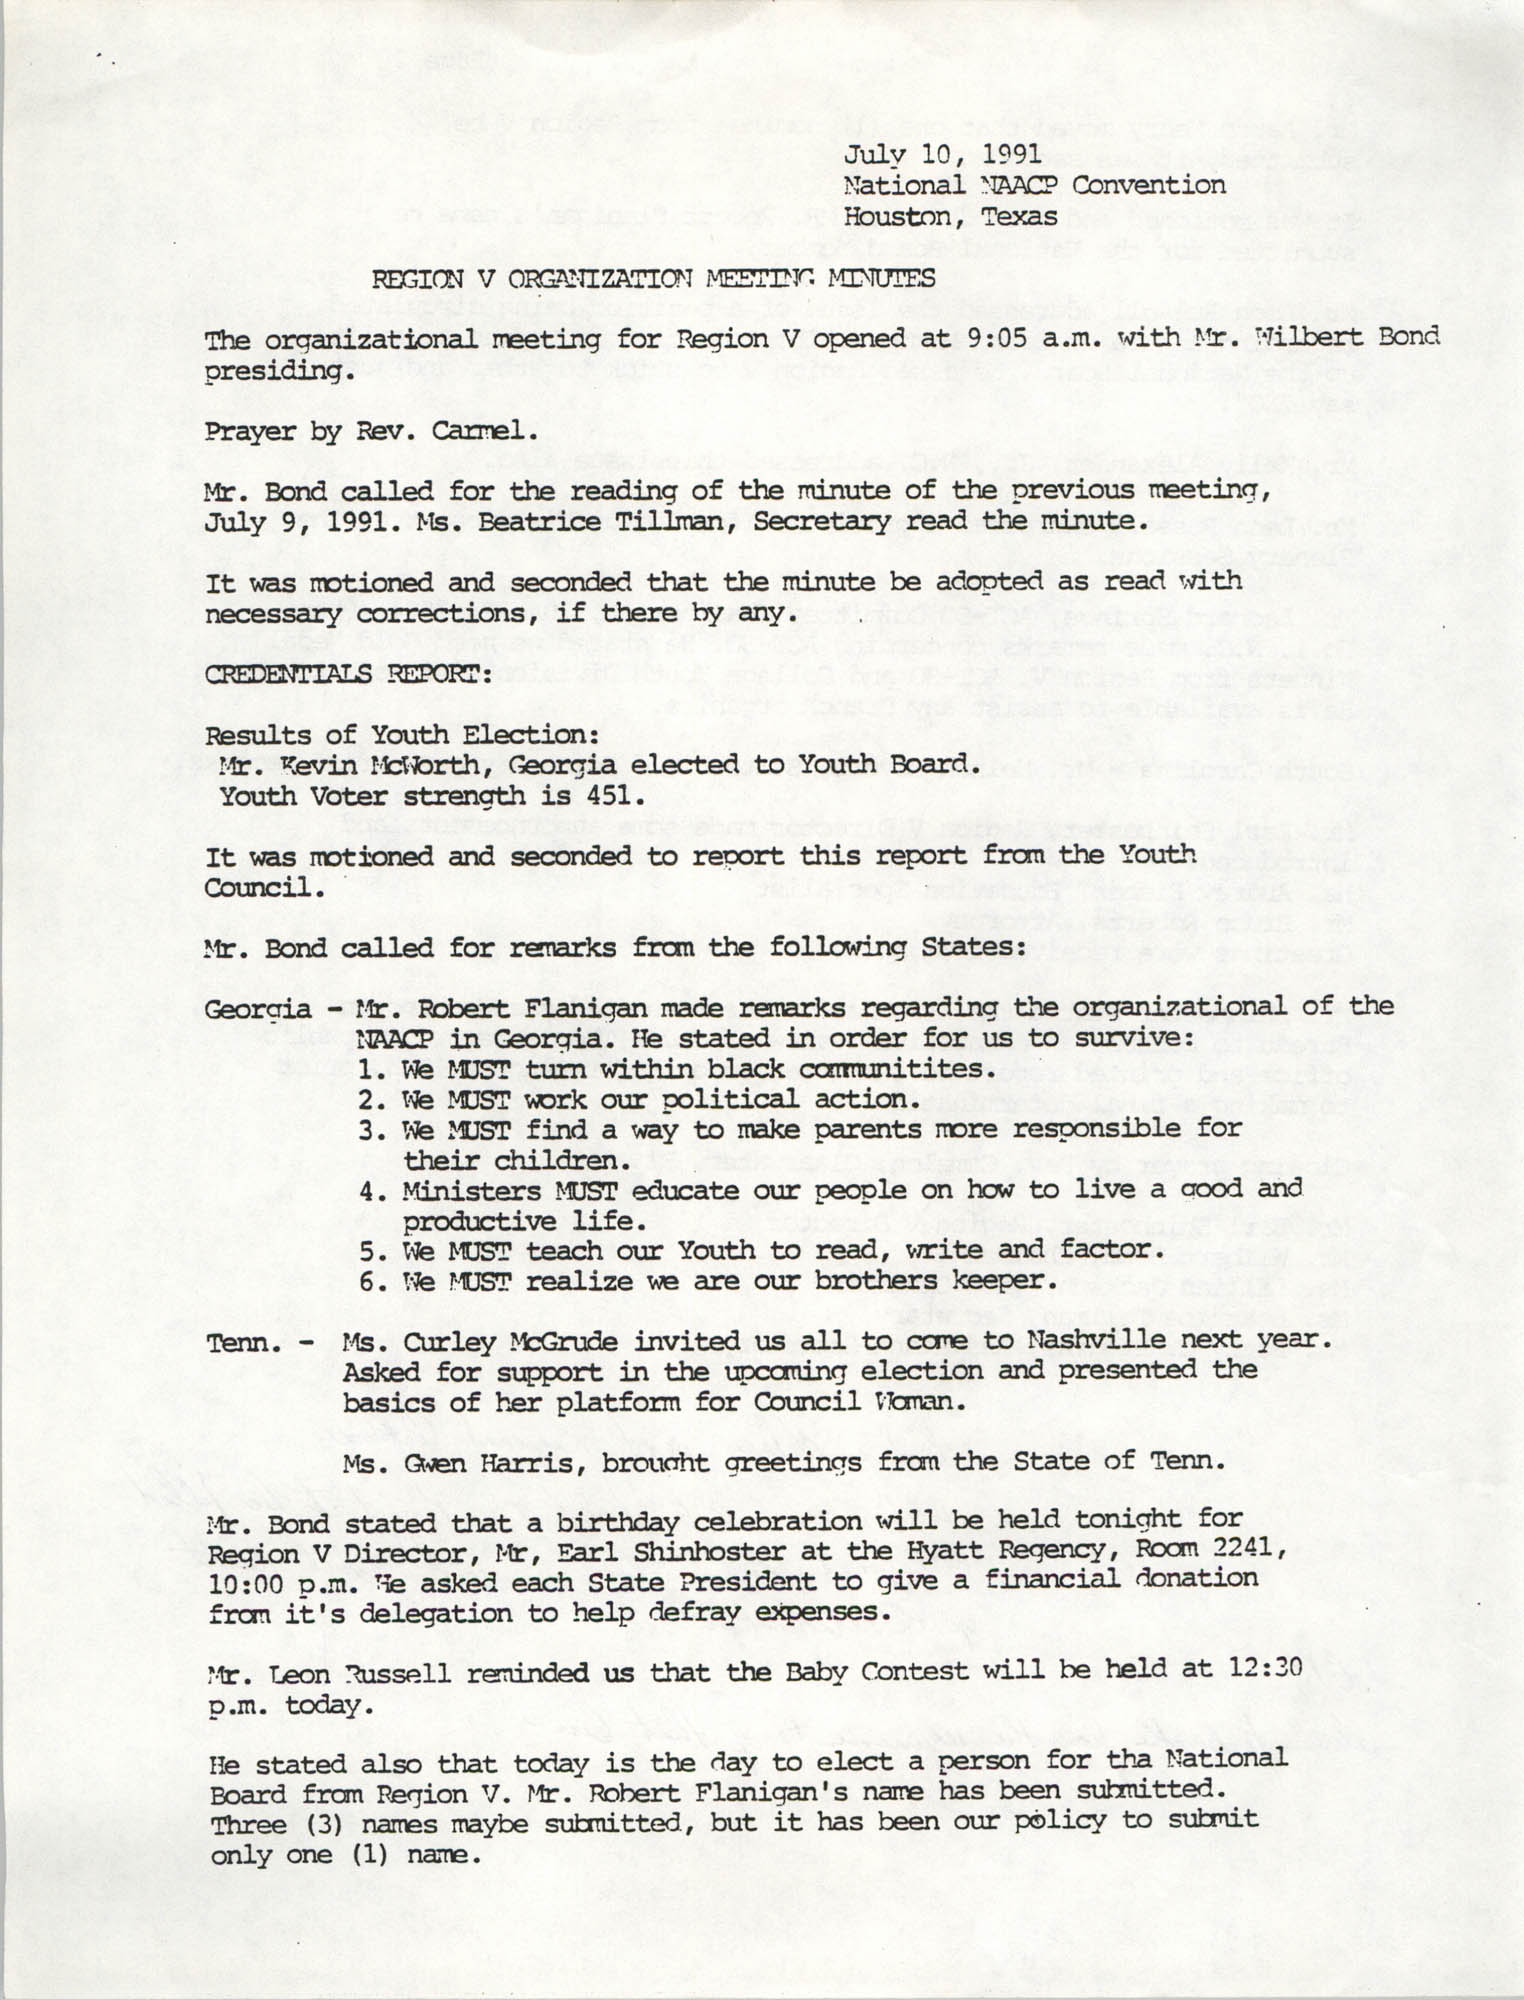 NAACP 82nd Annual Convention Region V Organization Meeting Minutes, July 10, 1991